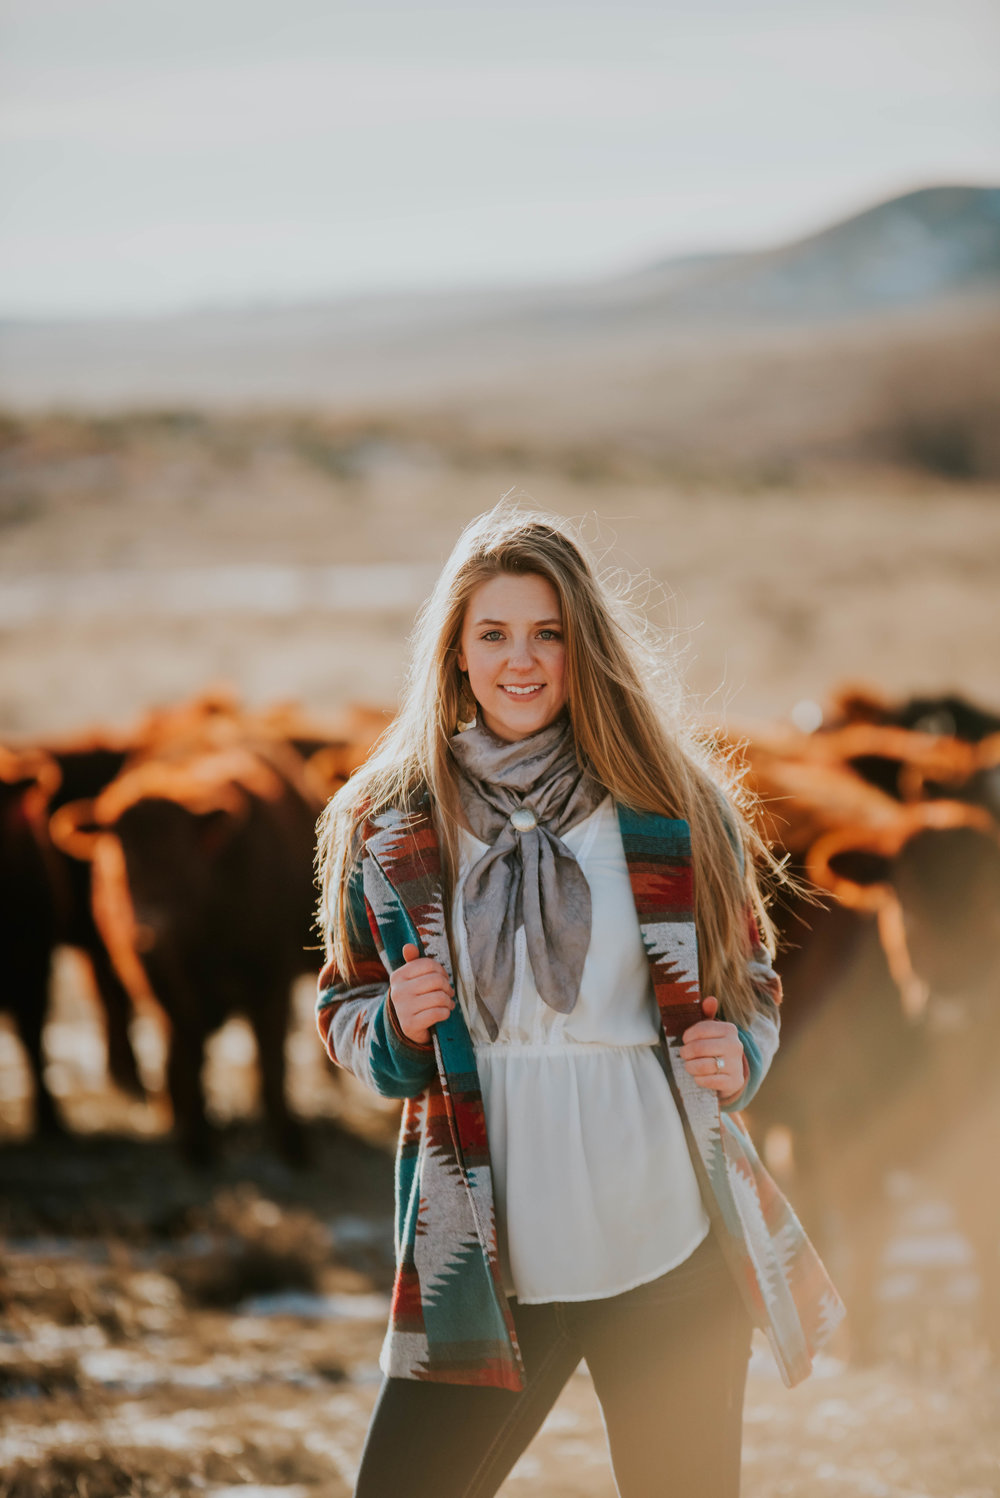 Miss. Miller's Photography | Ranch Photography | Colorado Photographer | Western Photographer | cattle ranching